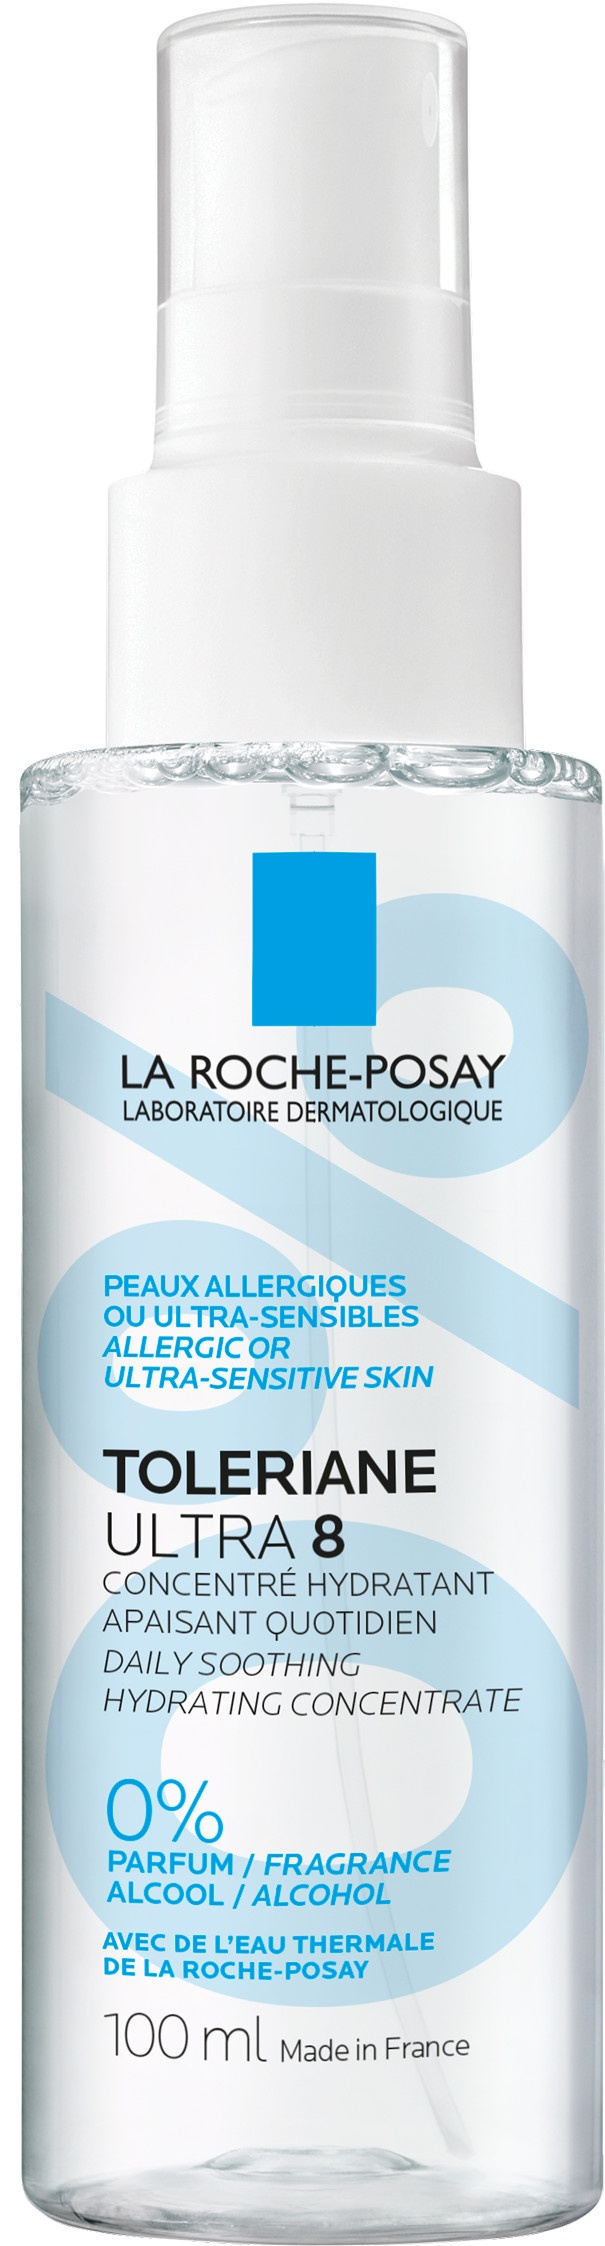 La Roche-Posay Toleriane Ultra 8 Daily Soothing Hydrating Concentrate 100ml